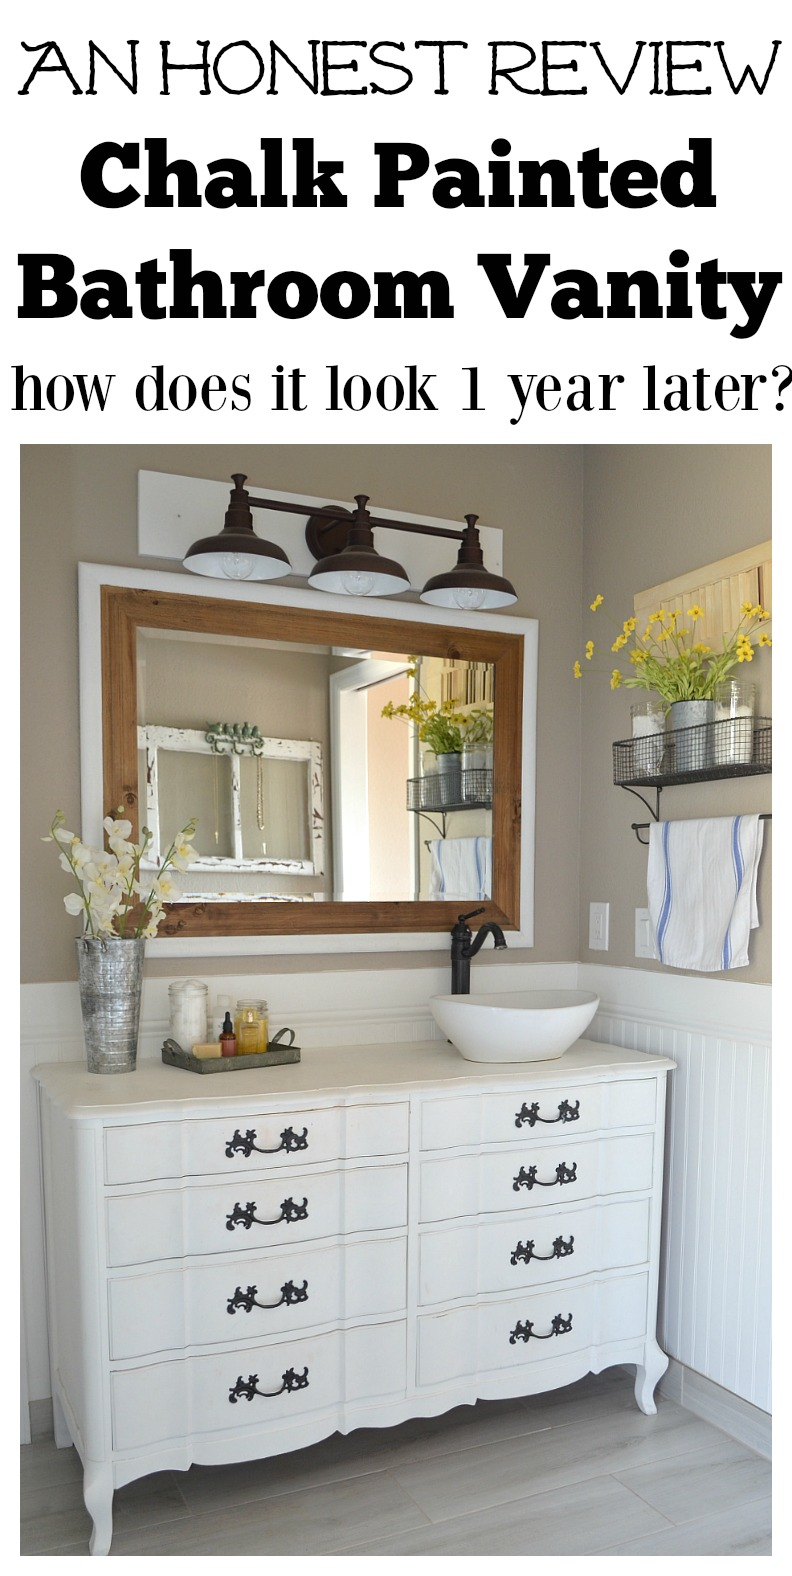 painting a bathroom vanity. An Honest Review Of Chalk Painted Bathroom Vanities. Full After 1 Year Use Painting A Vanity